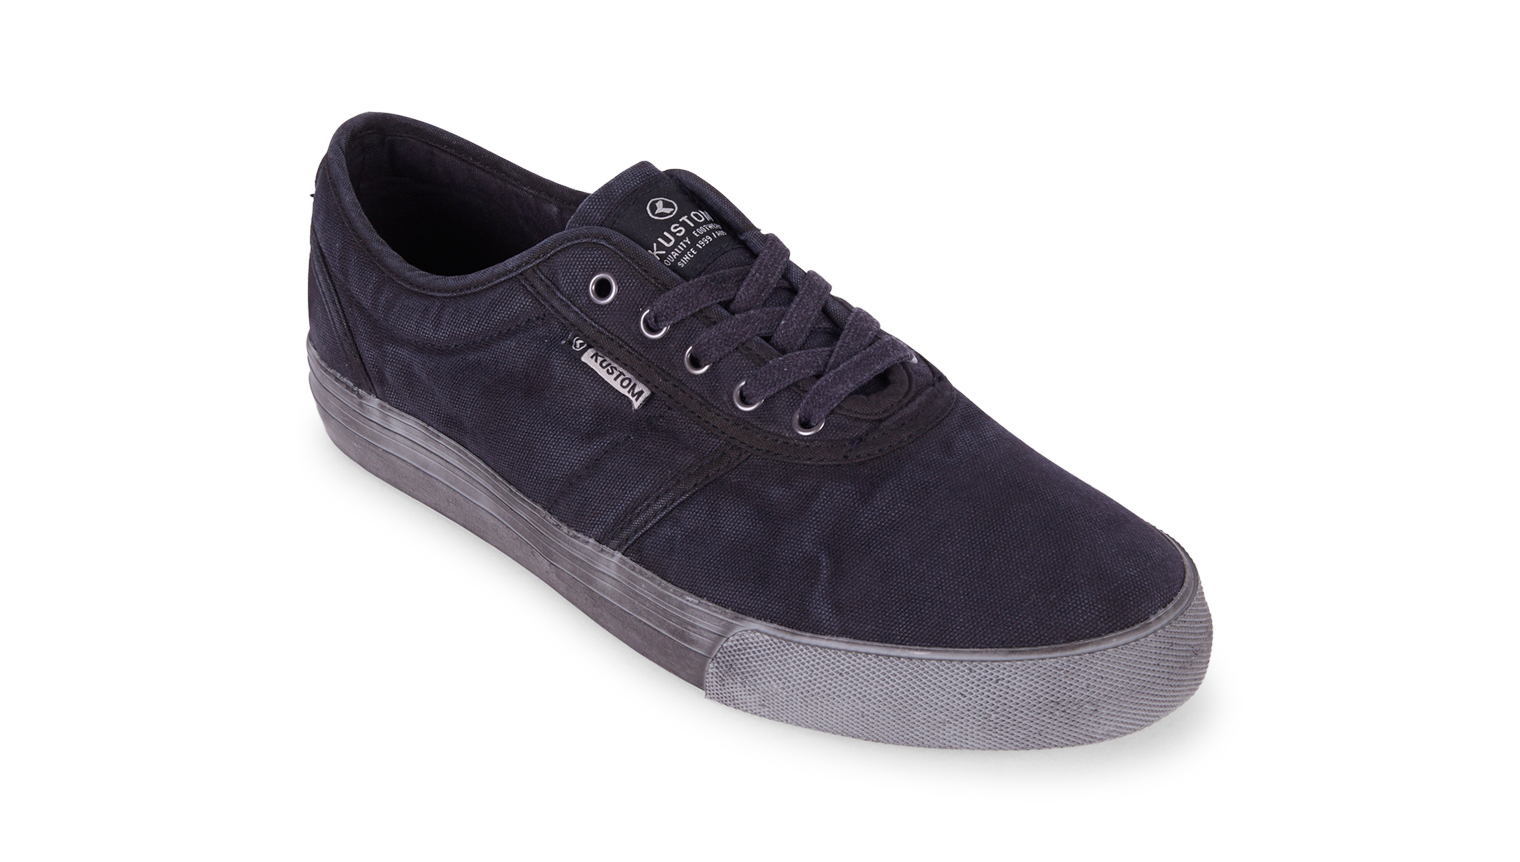 KUSTOM SHOES DROPKICK PRO SHOE / ALL BLACK